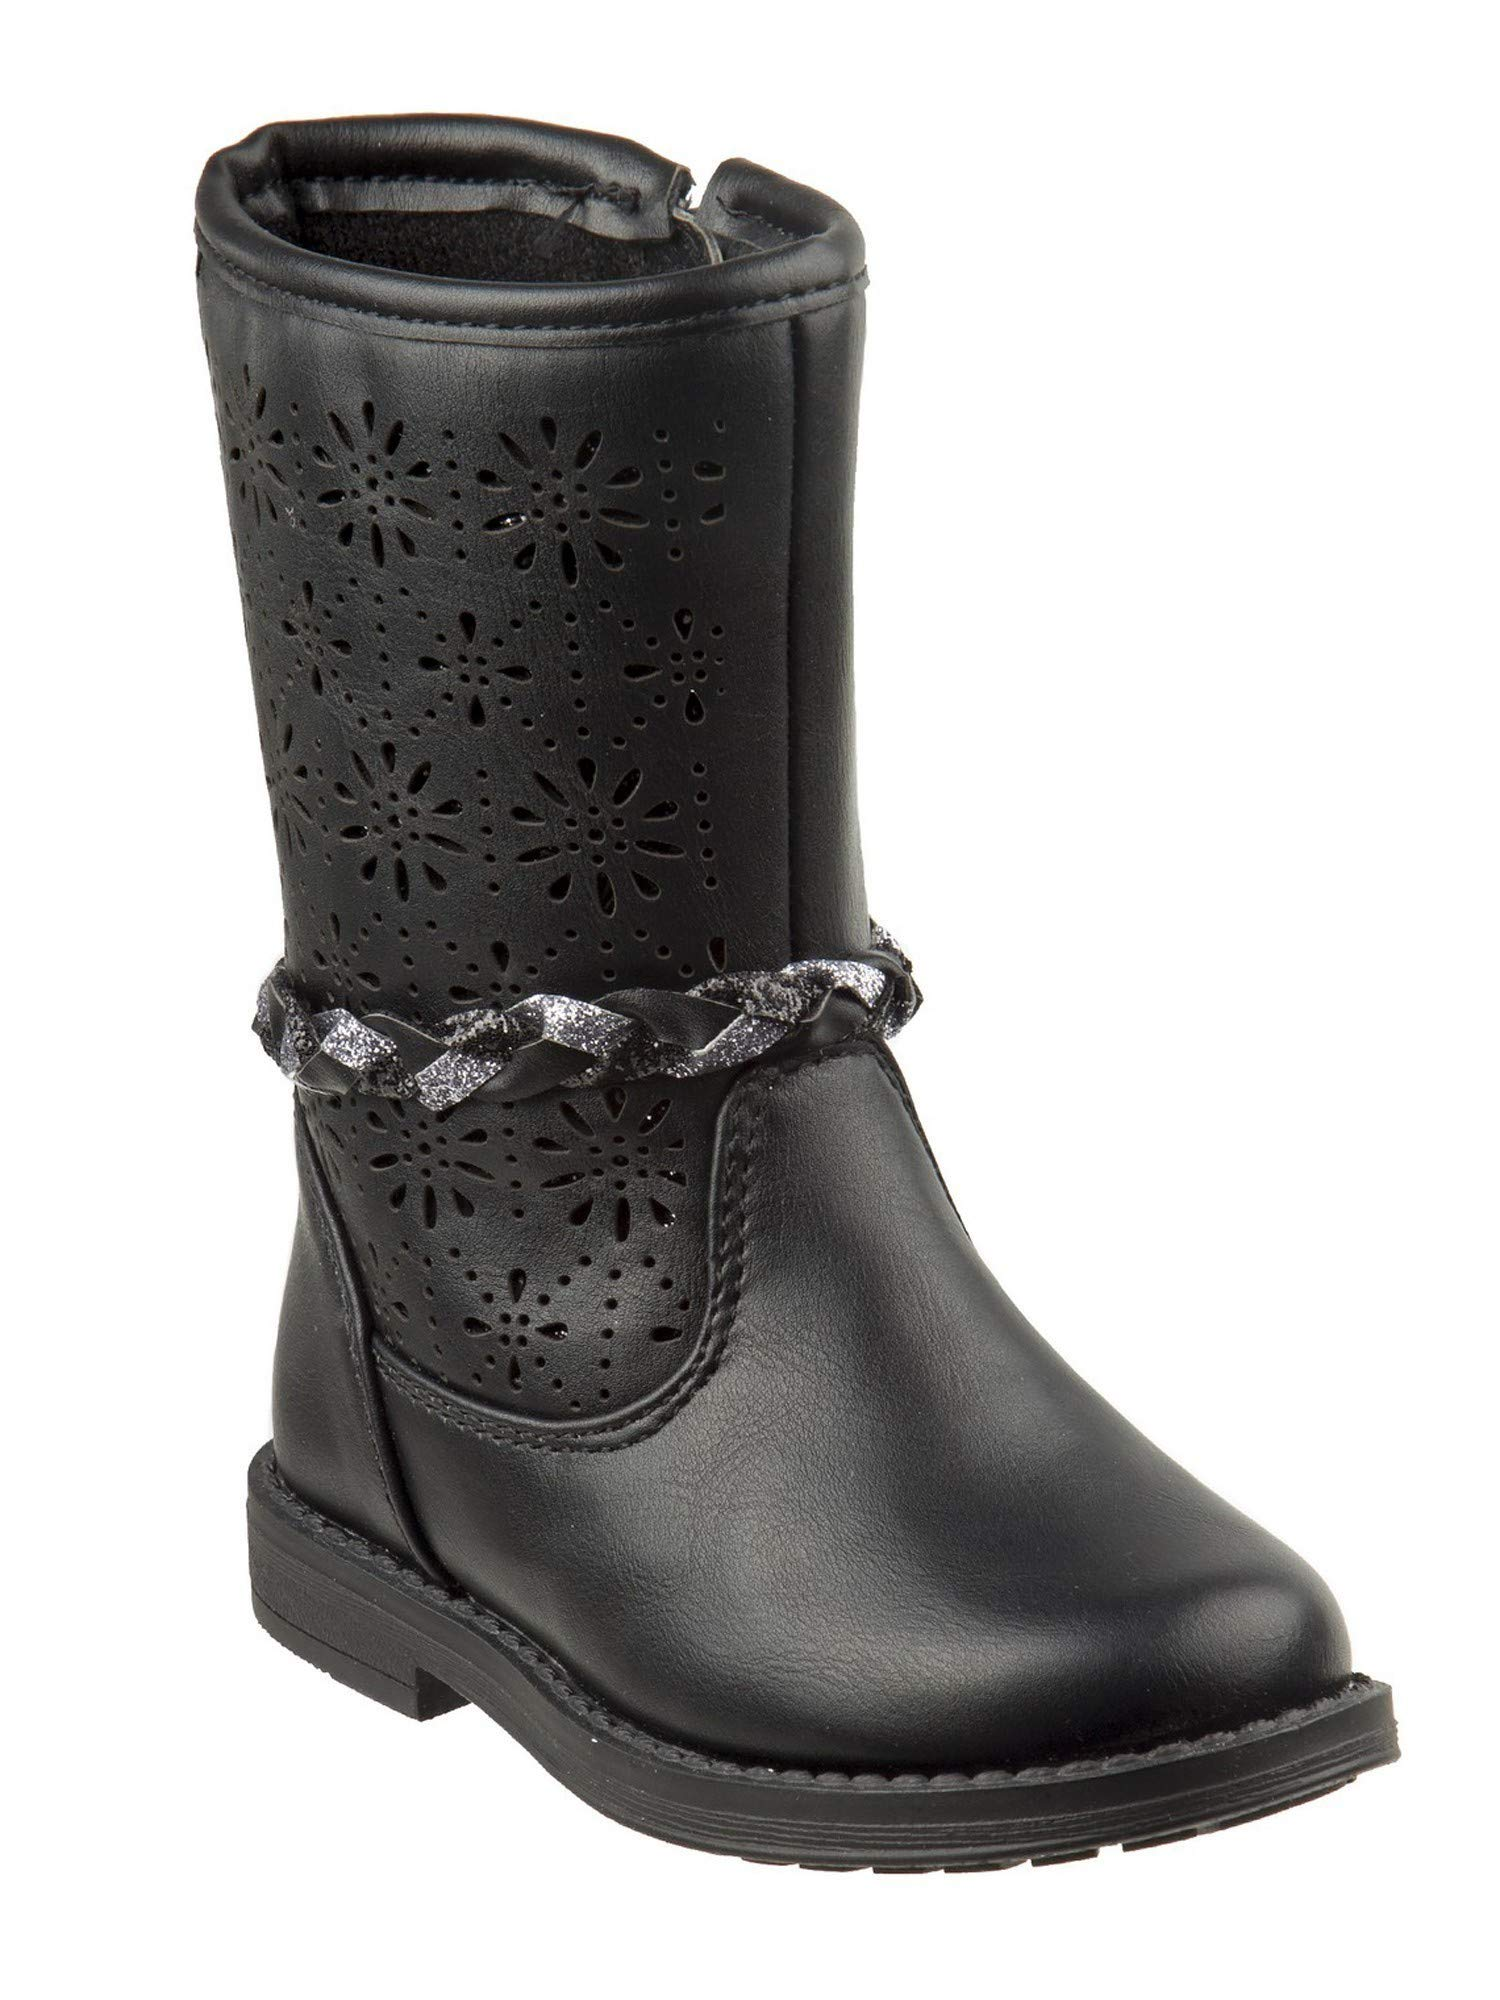 Laura Ashley Little Girls Black Cut-Out Braided Strap Boots 11 Kids